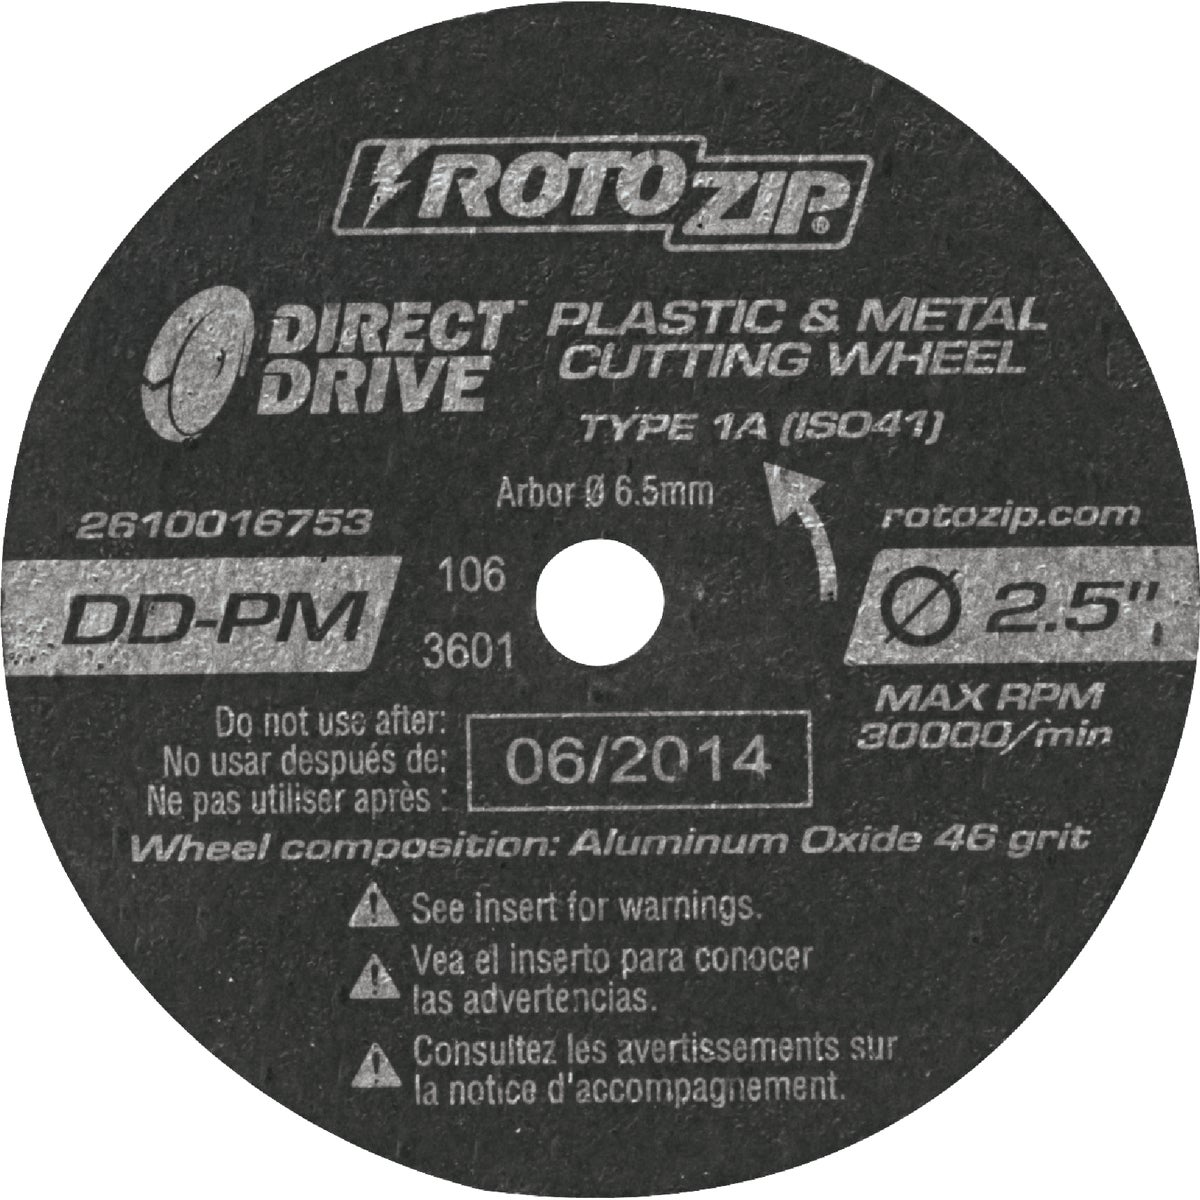 5PK METAL WHEEL - DD-PM5 by Rotozip Tool Corp